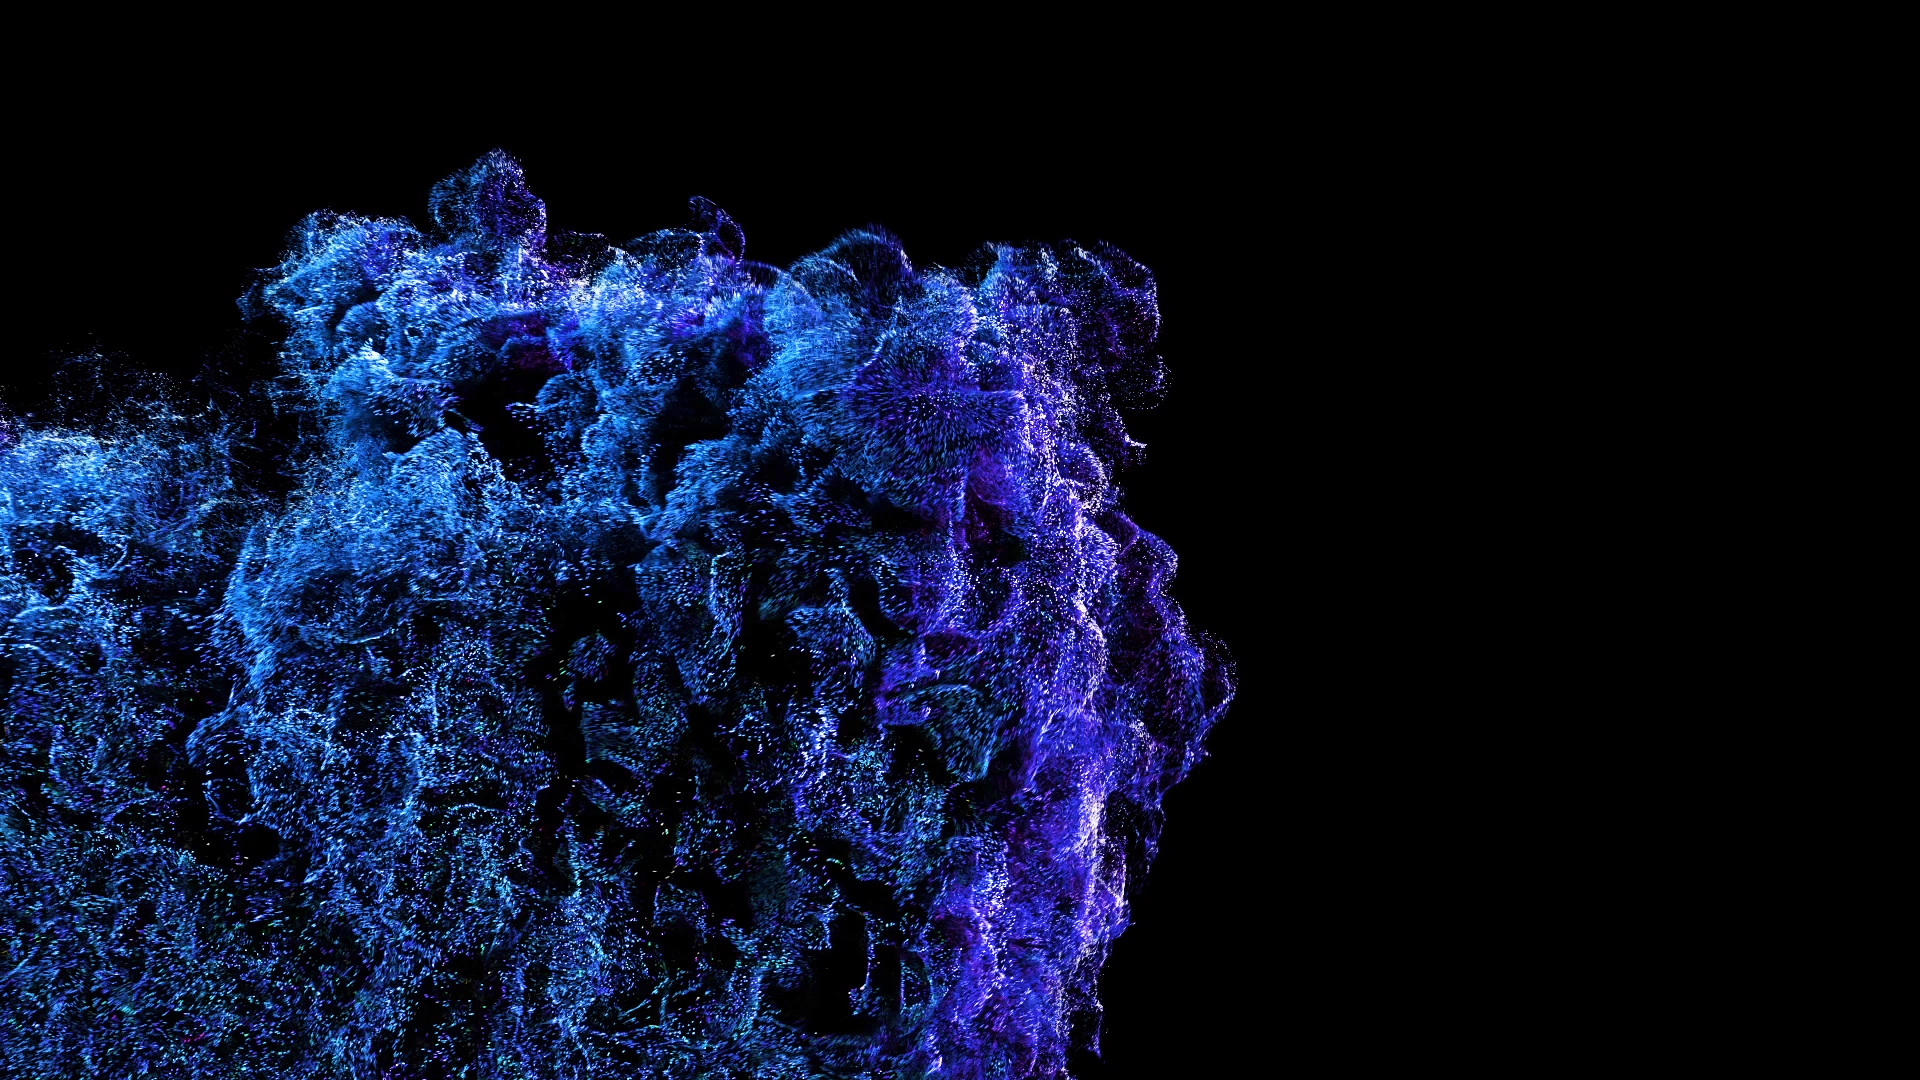 Particles Explosion VJ Loop by Ghosteam